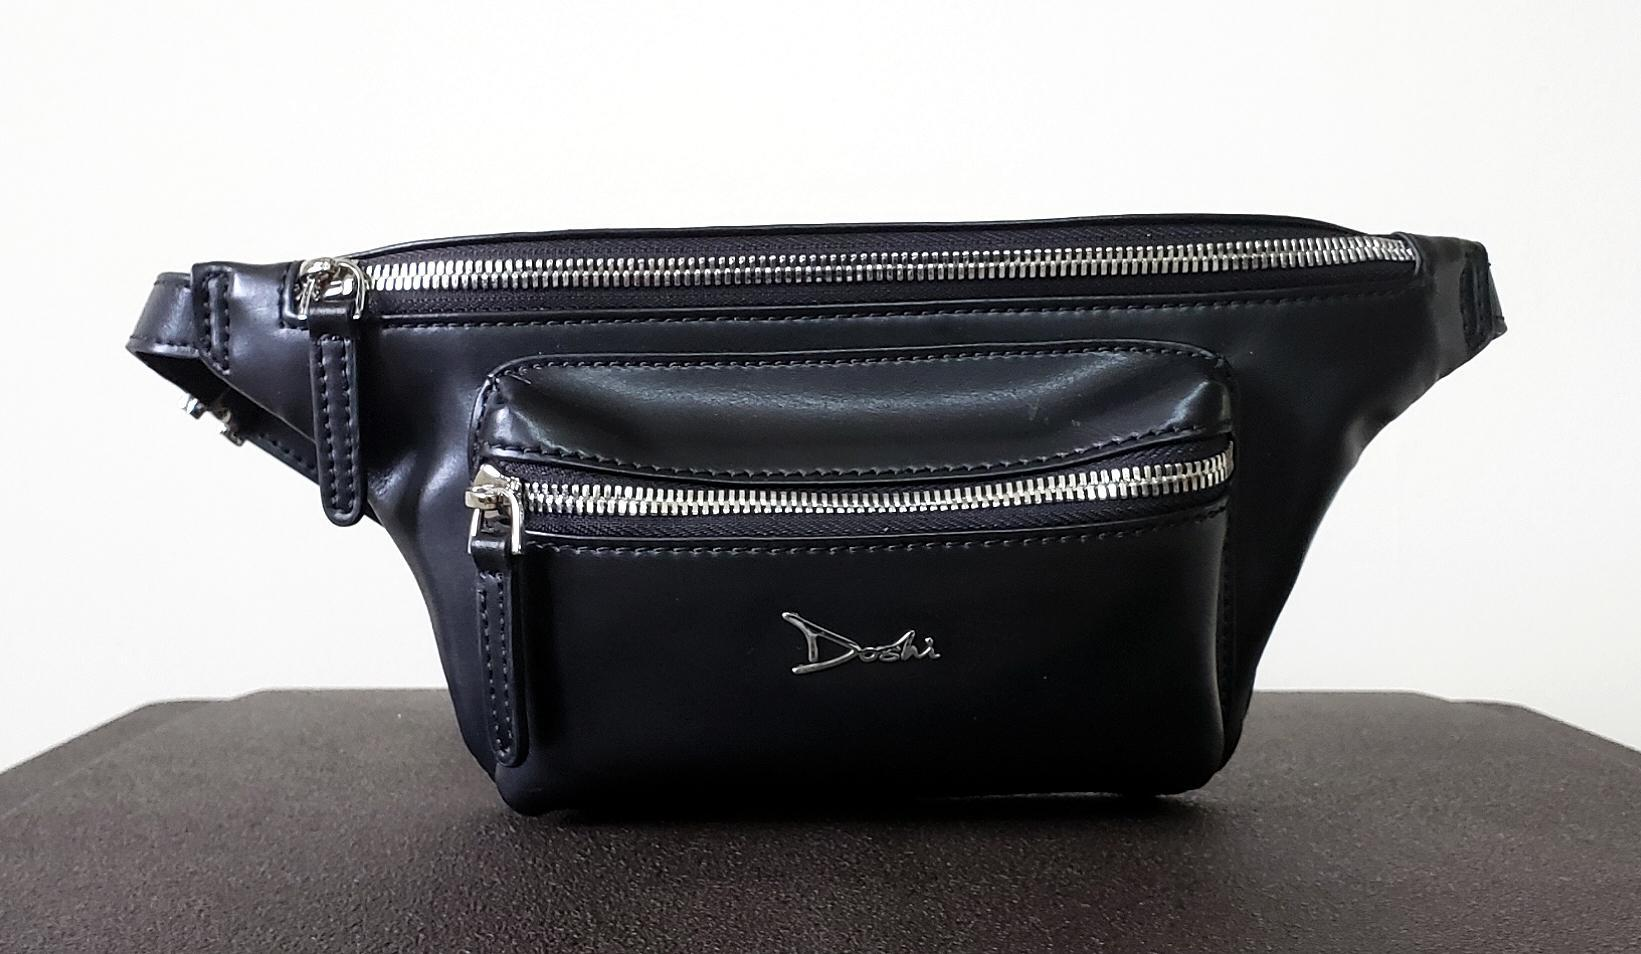 Slim Belt Bag - Doshi FCSA